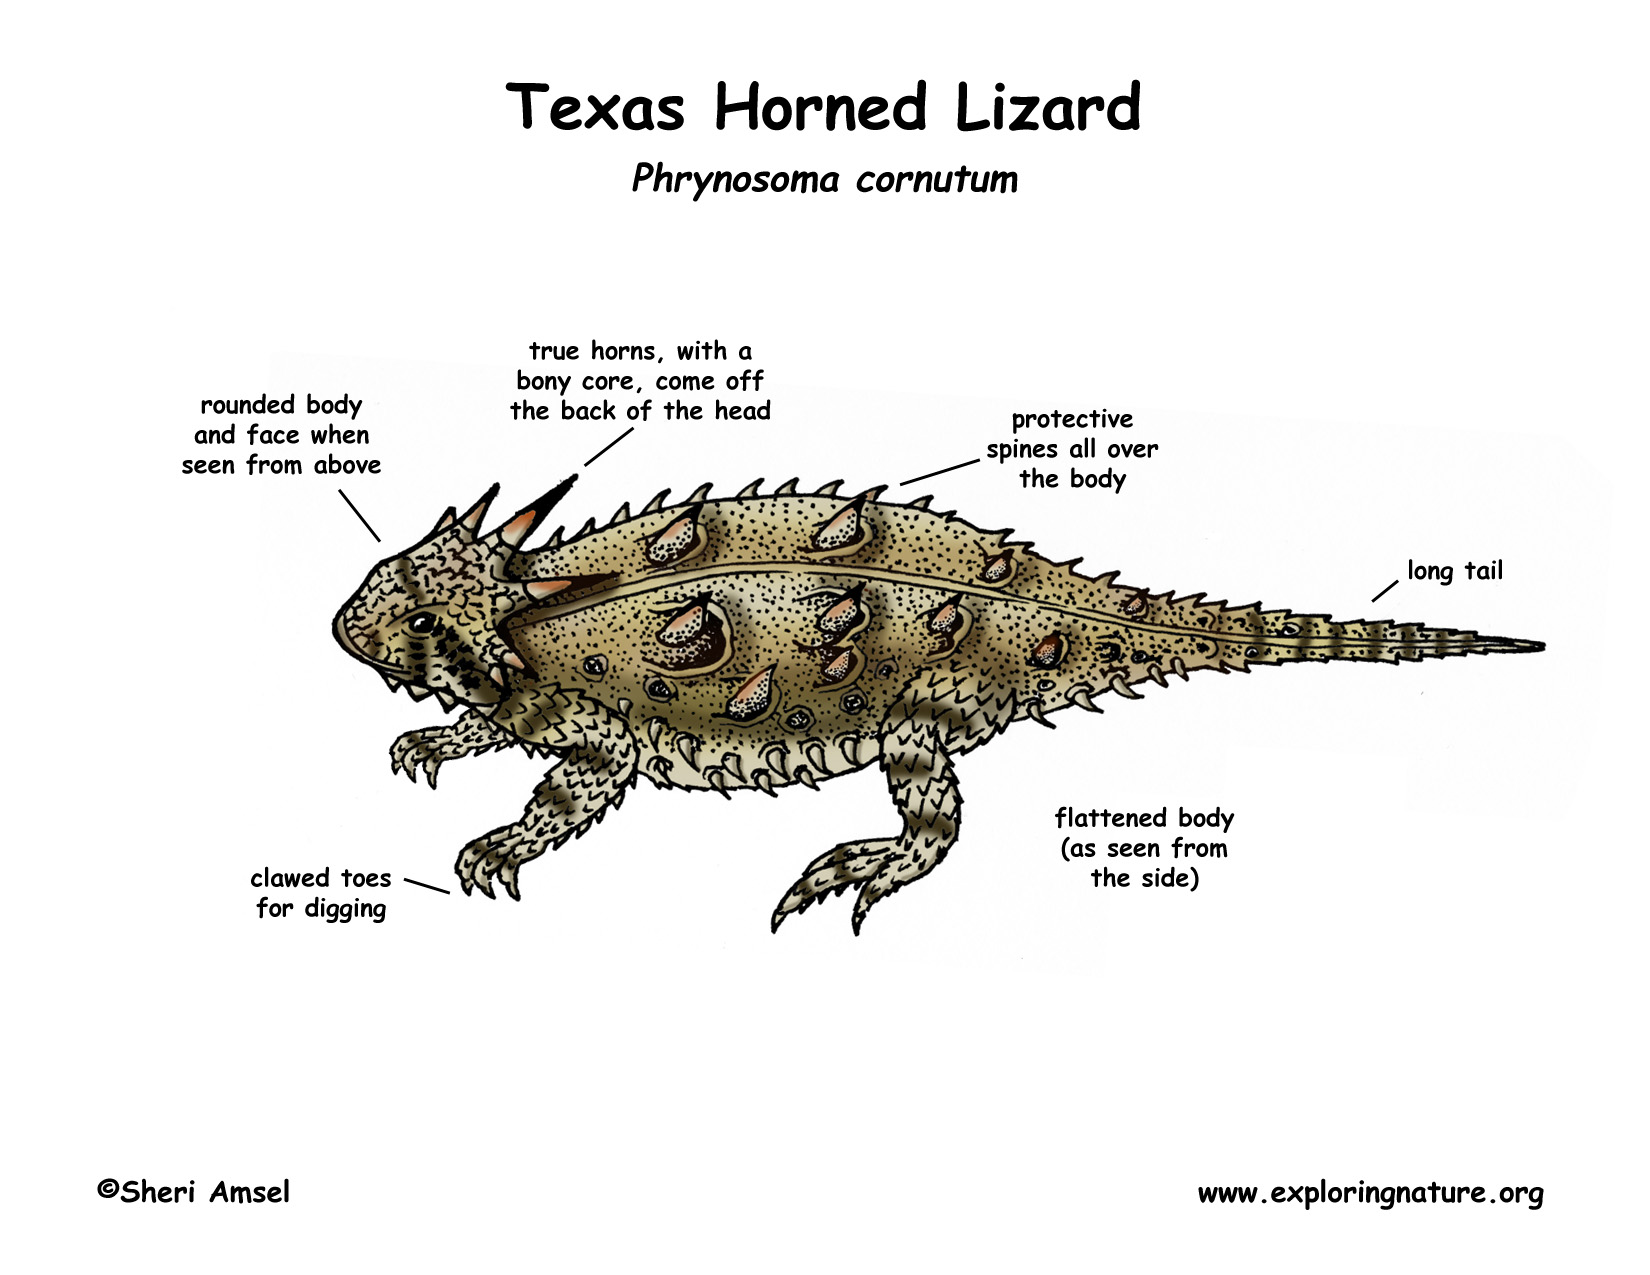 lizard life cycle diagram craftsman dyt 4000 wiring texas horned also called toad